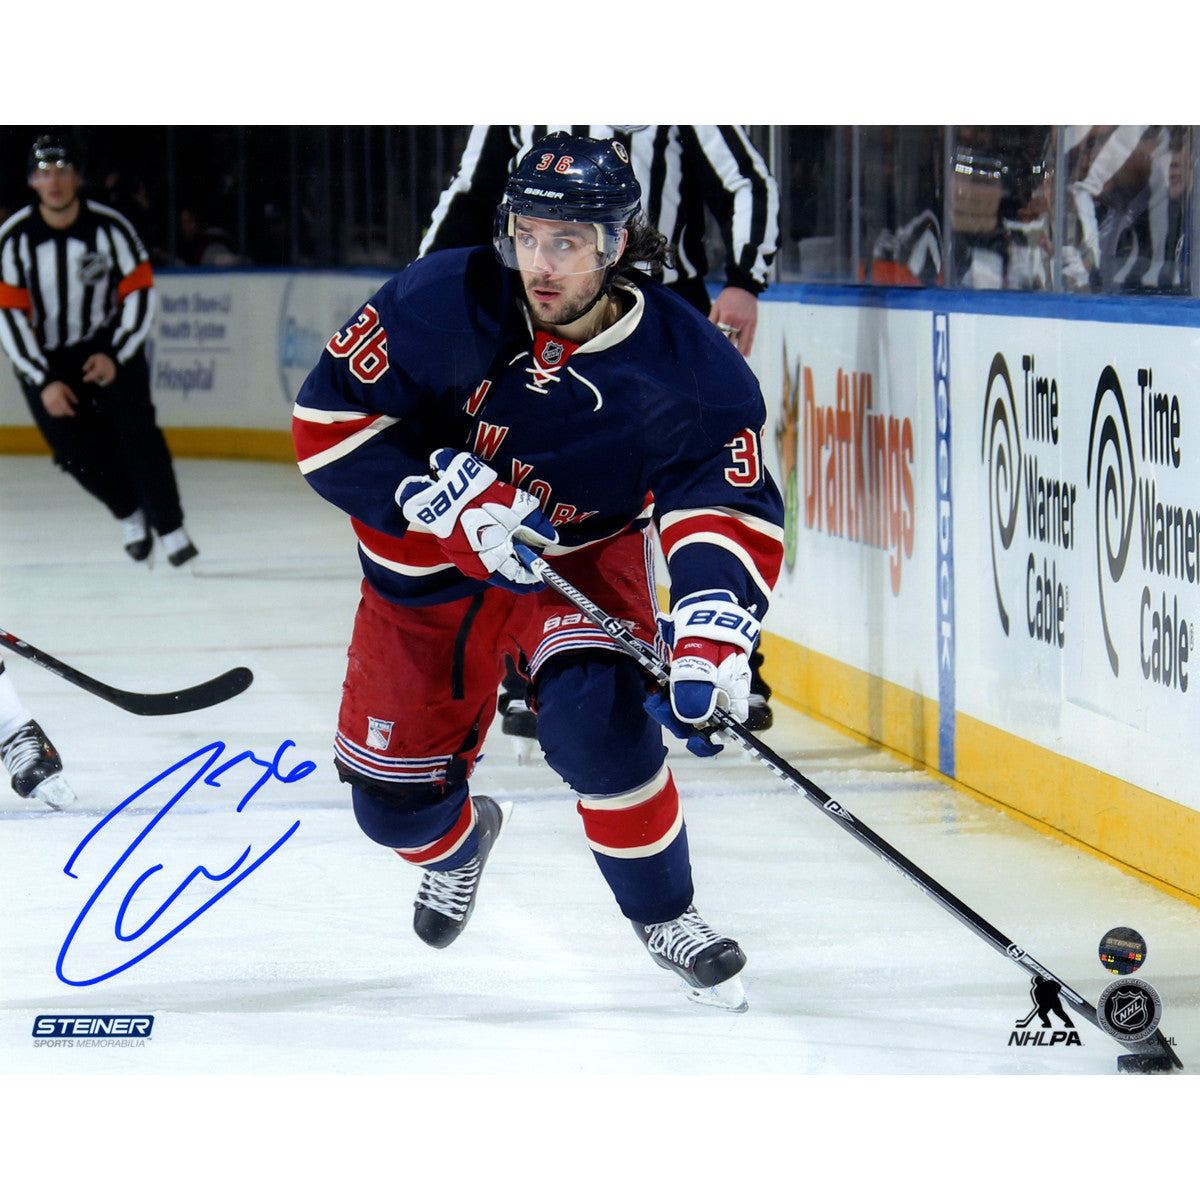 239e0b6a4 Mats Zuccarello Signed skates with the puck in Heritage Jersey 8x10 Photo  ...